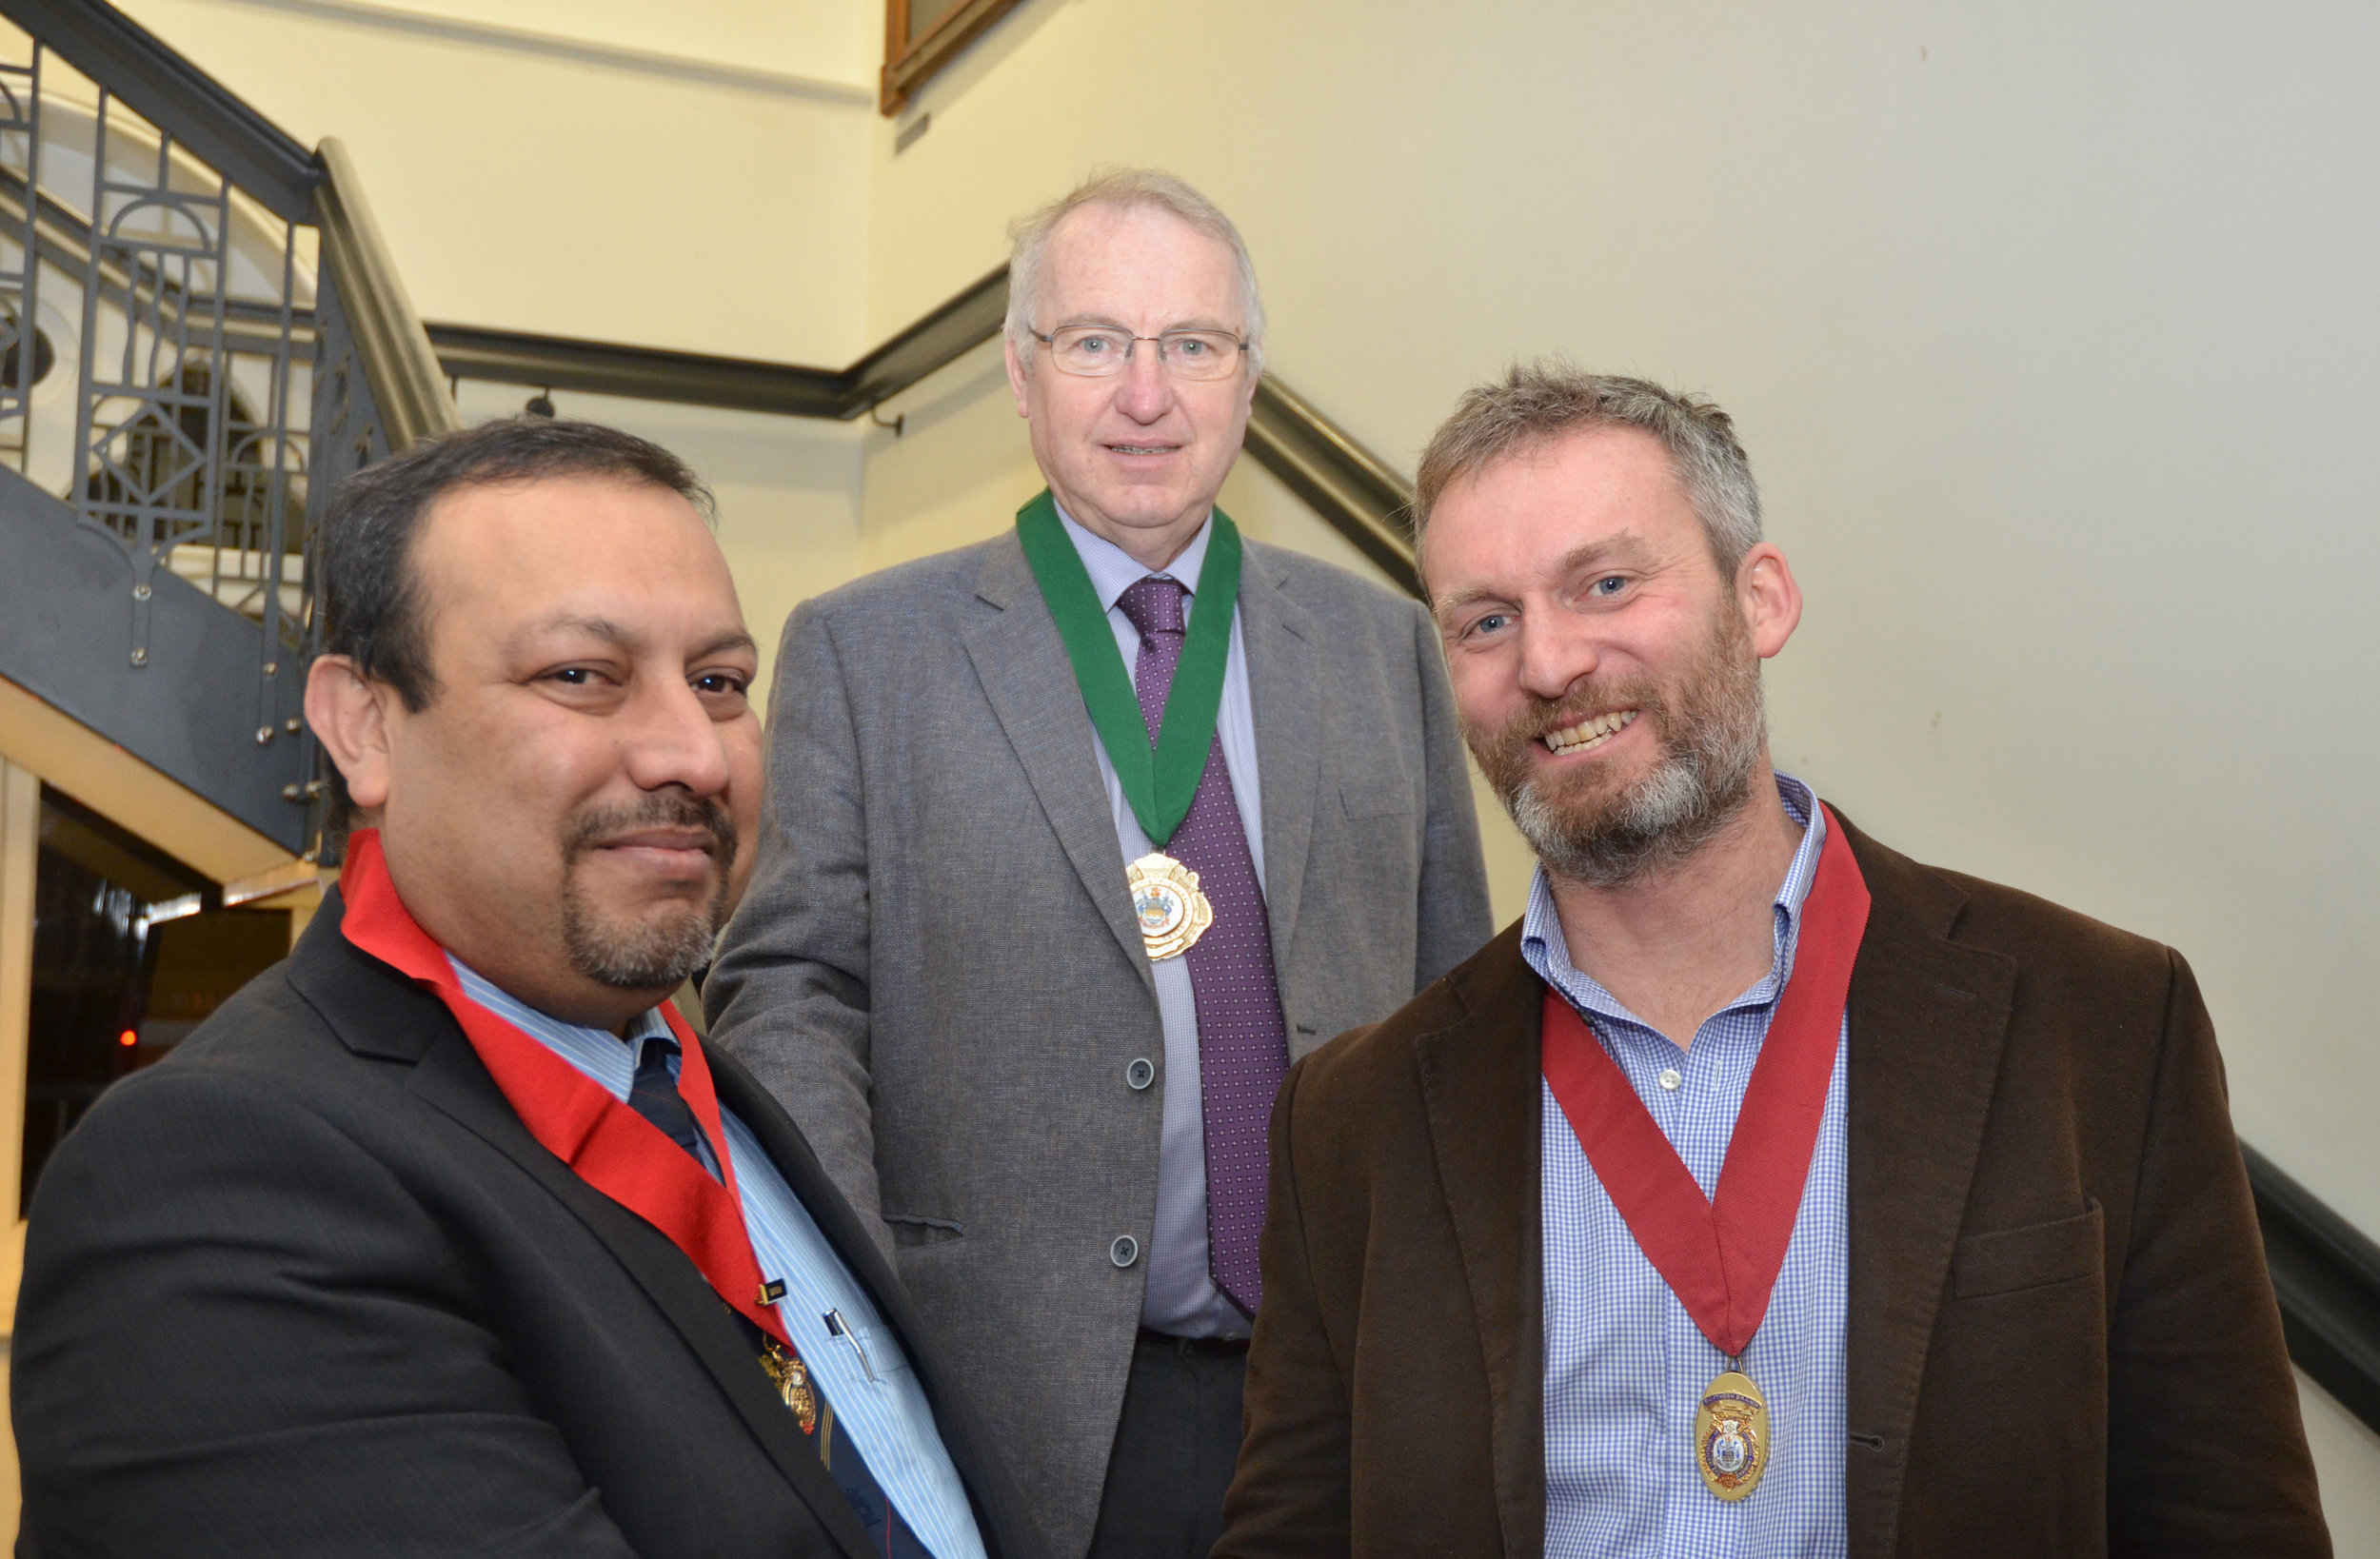 Photo Caption:  (from left) Outgoing Chairman Saprava Bhattacharya, Institute President Joe Kindregan and WFBA's Alastair Craig